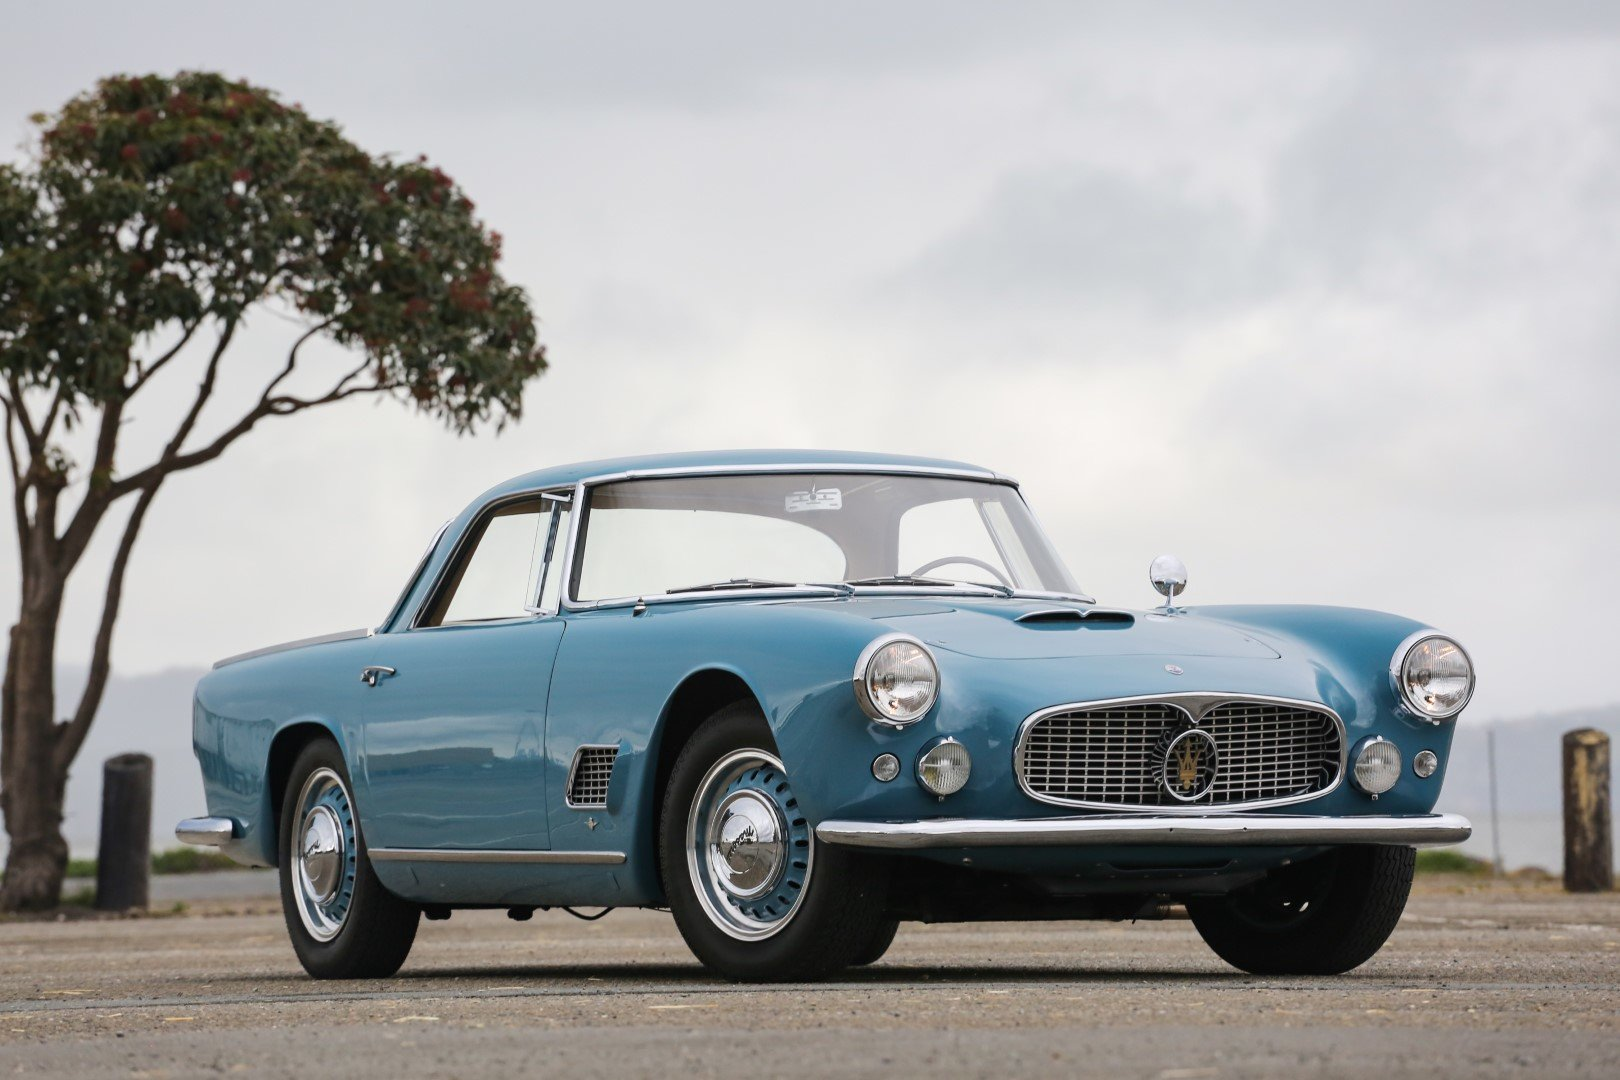 1959 Maserati 3500 GT - GS CARS For Sale (picture 1 of 3)